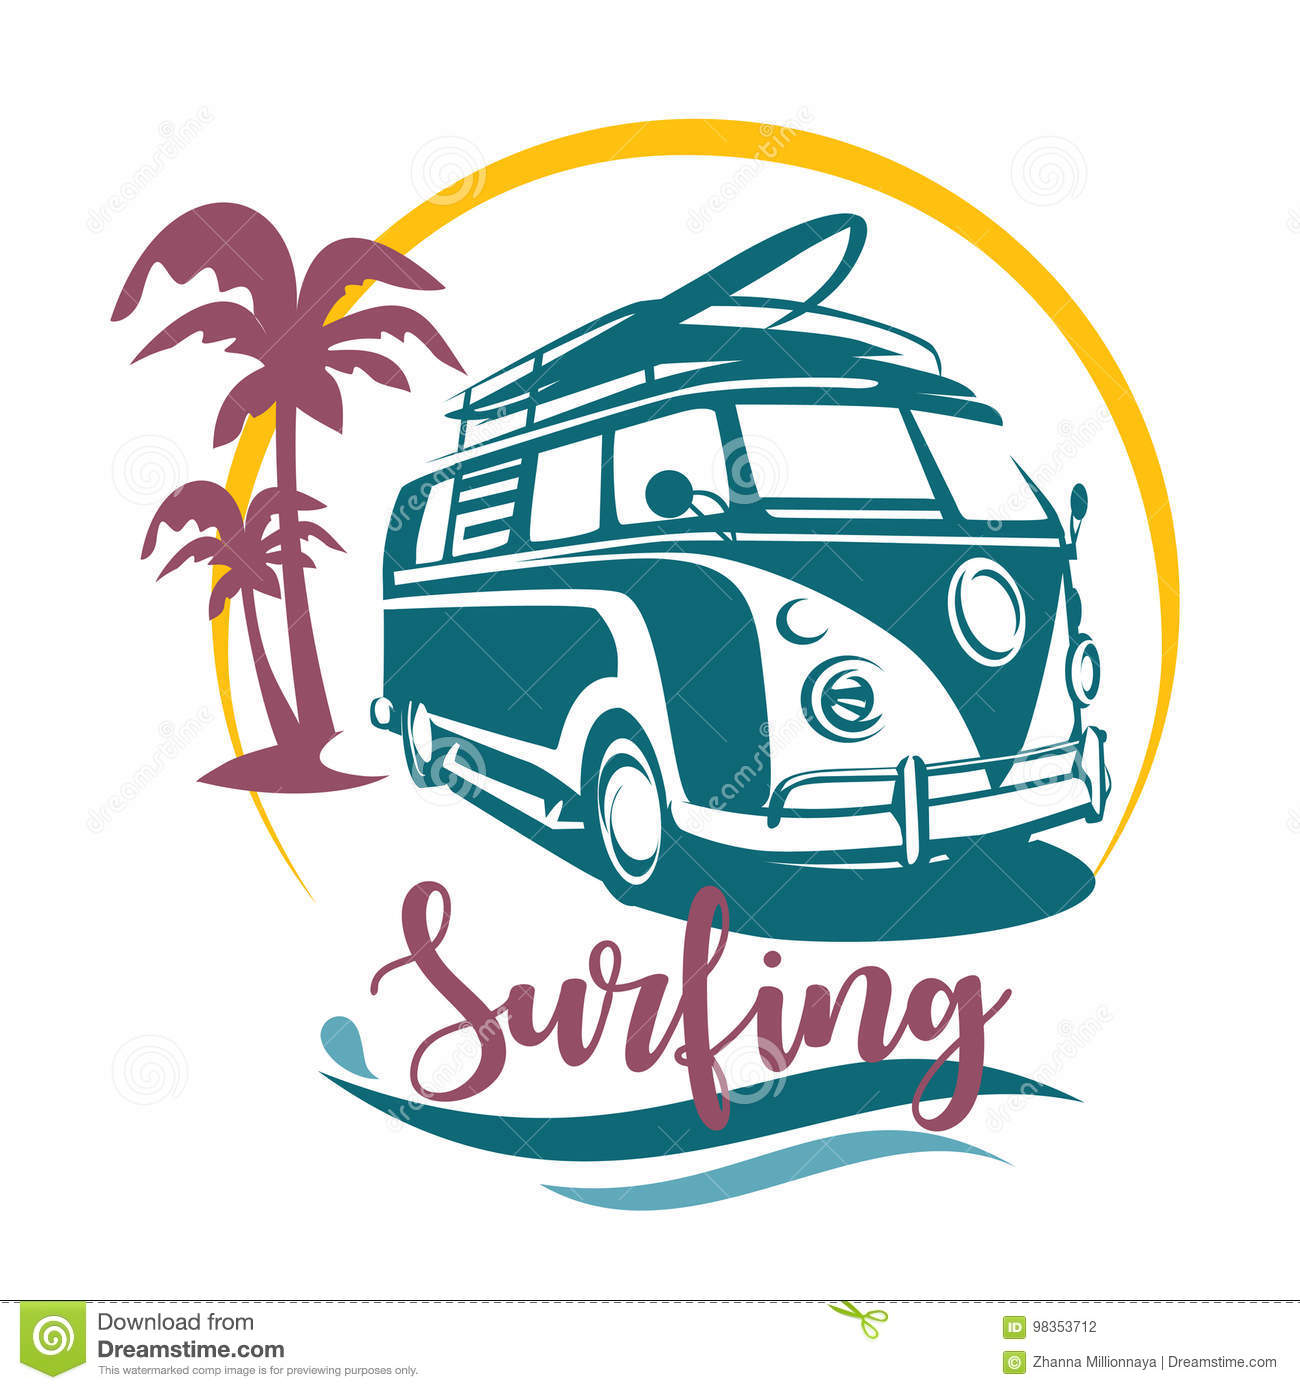 surfing camper stylized symbol stock vector illustration of